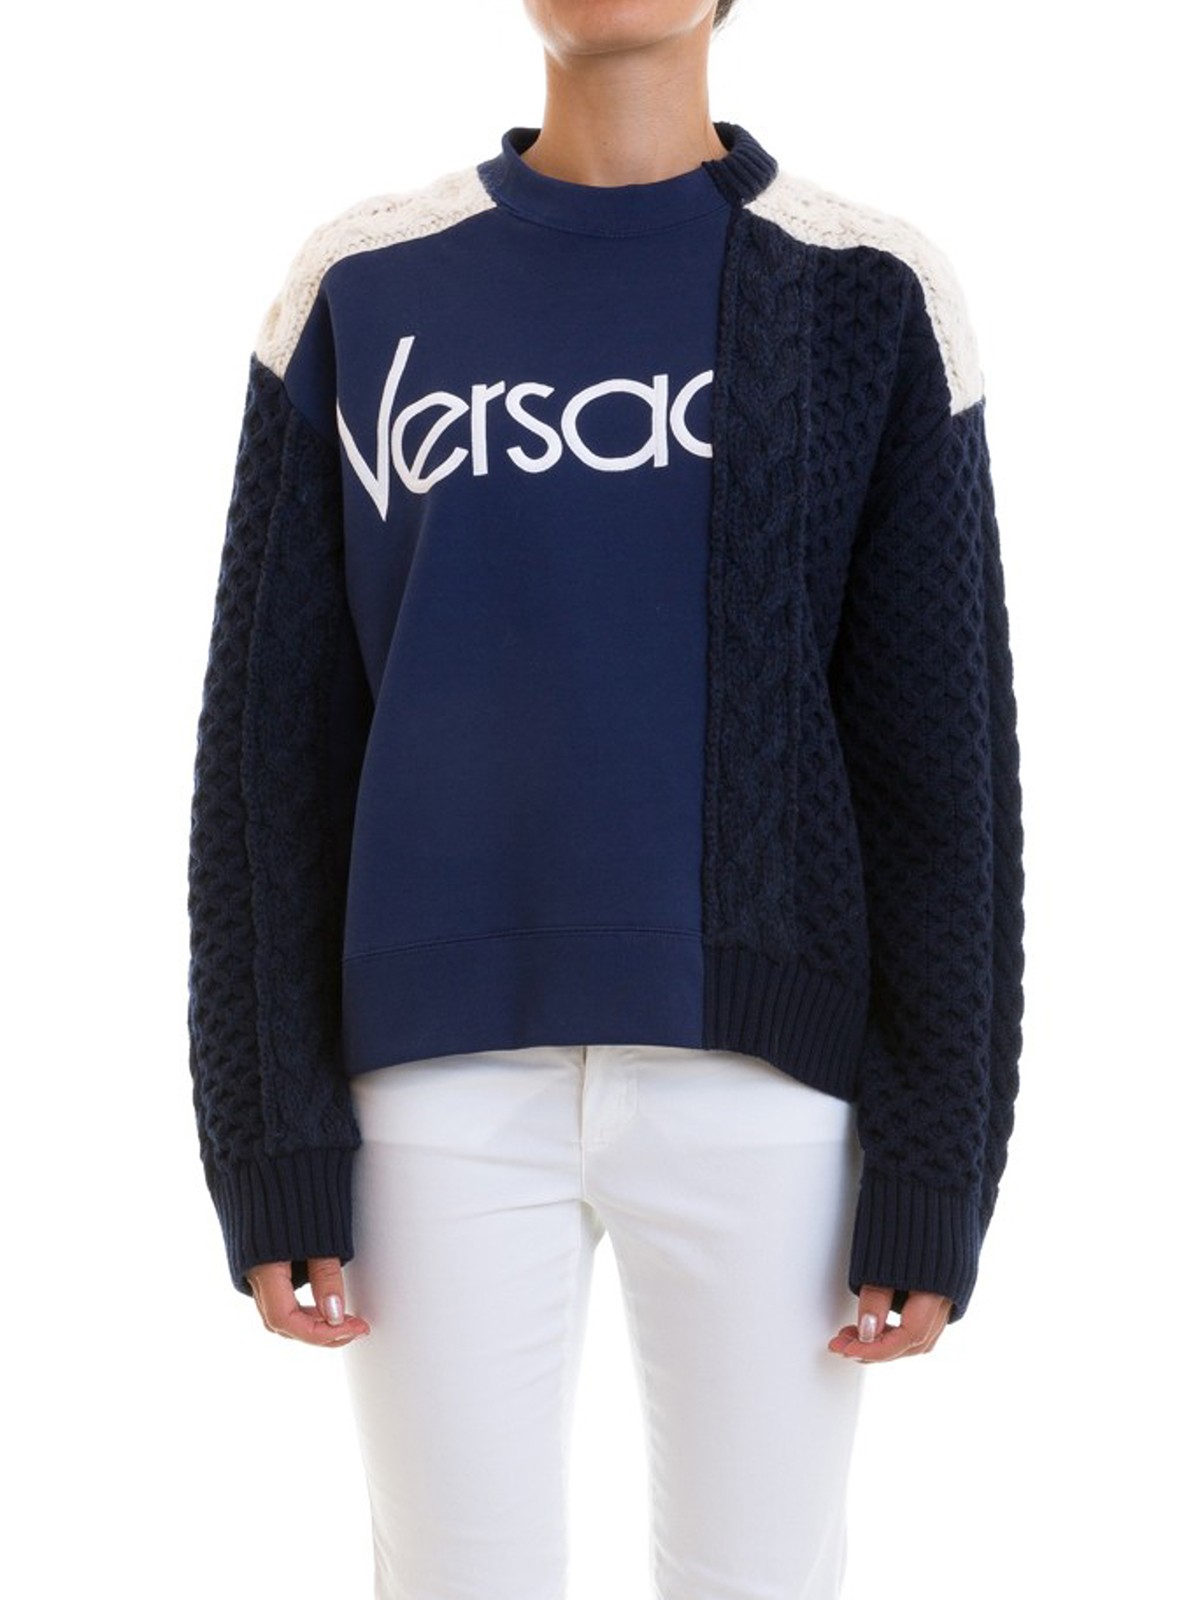 d840cd957117 Versace - Pull Col Rond - Bleu - Pull col rond - A80819 A226981 A1384